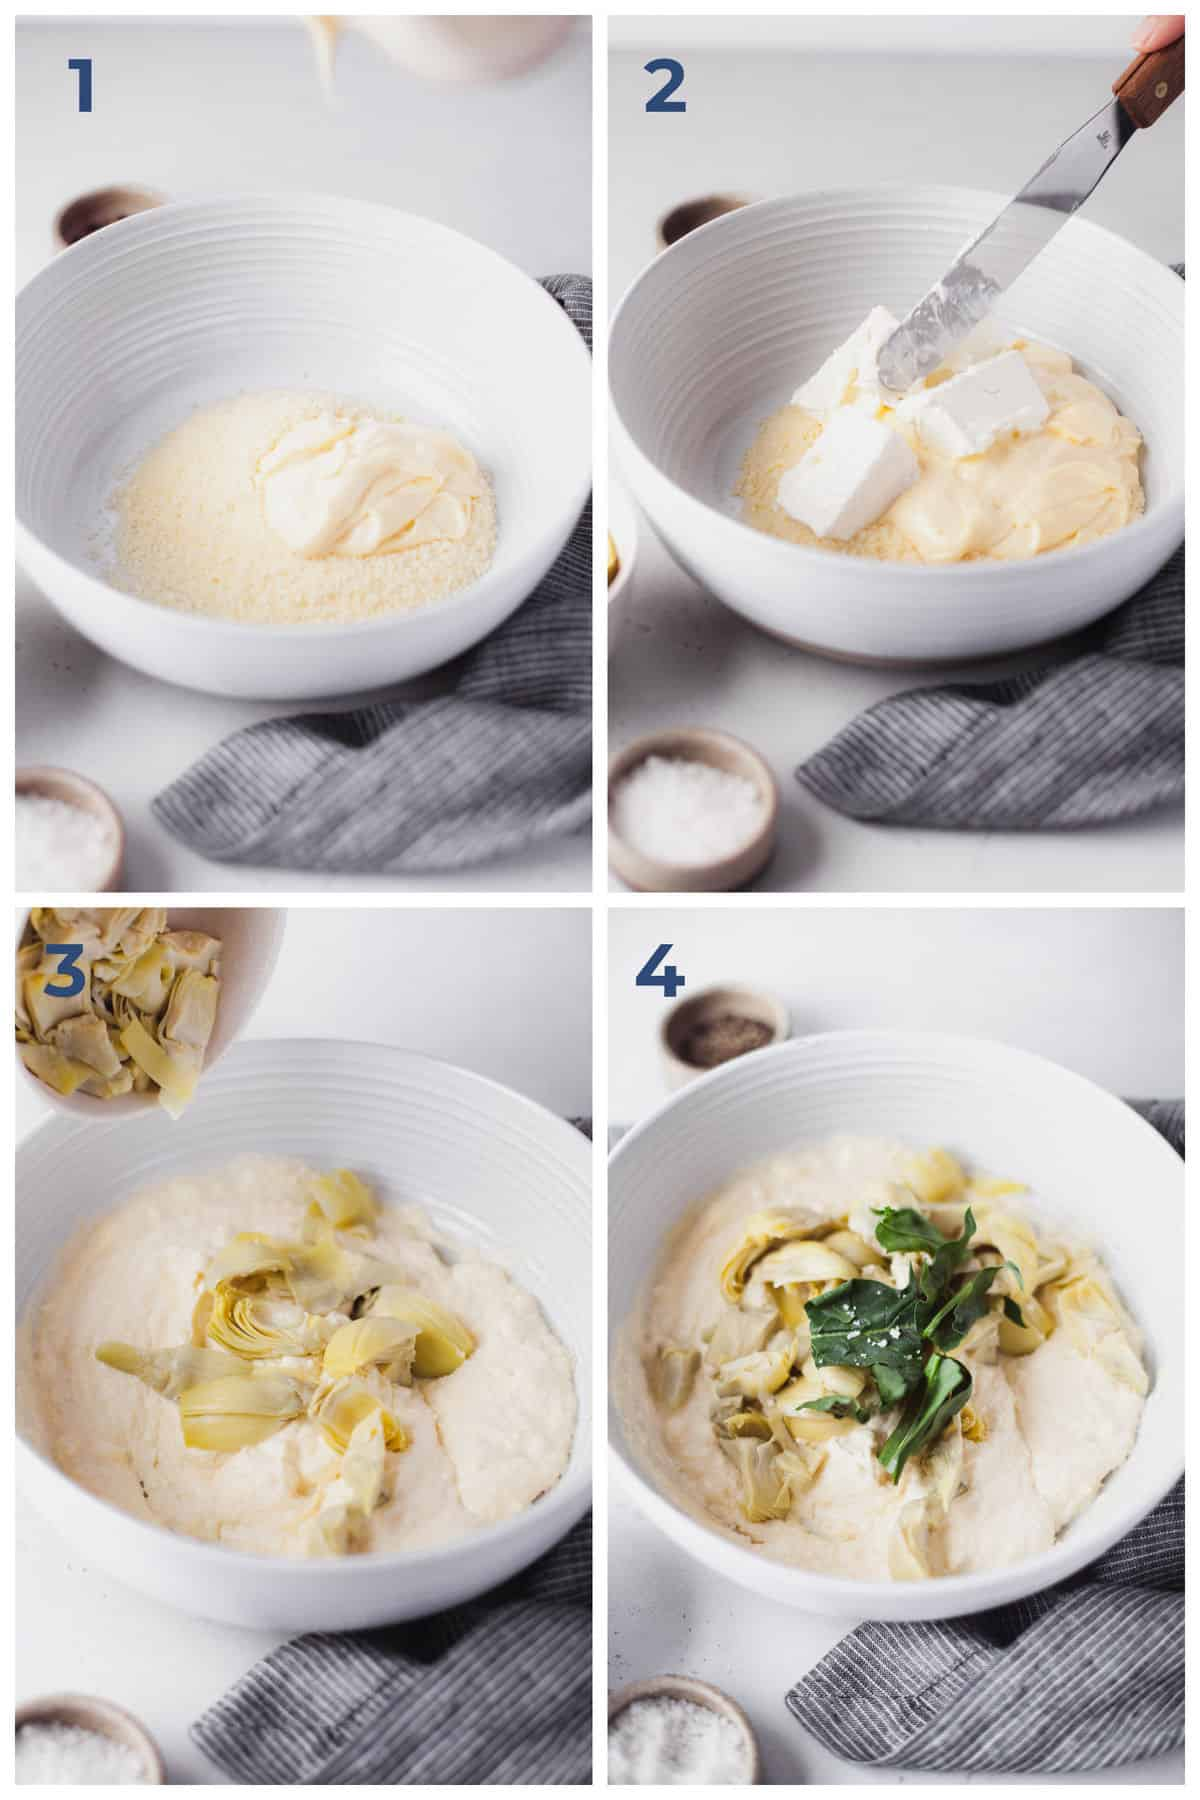 Step by Step Instructions for making Spinach and Artichoke Dip